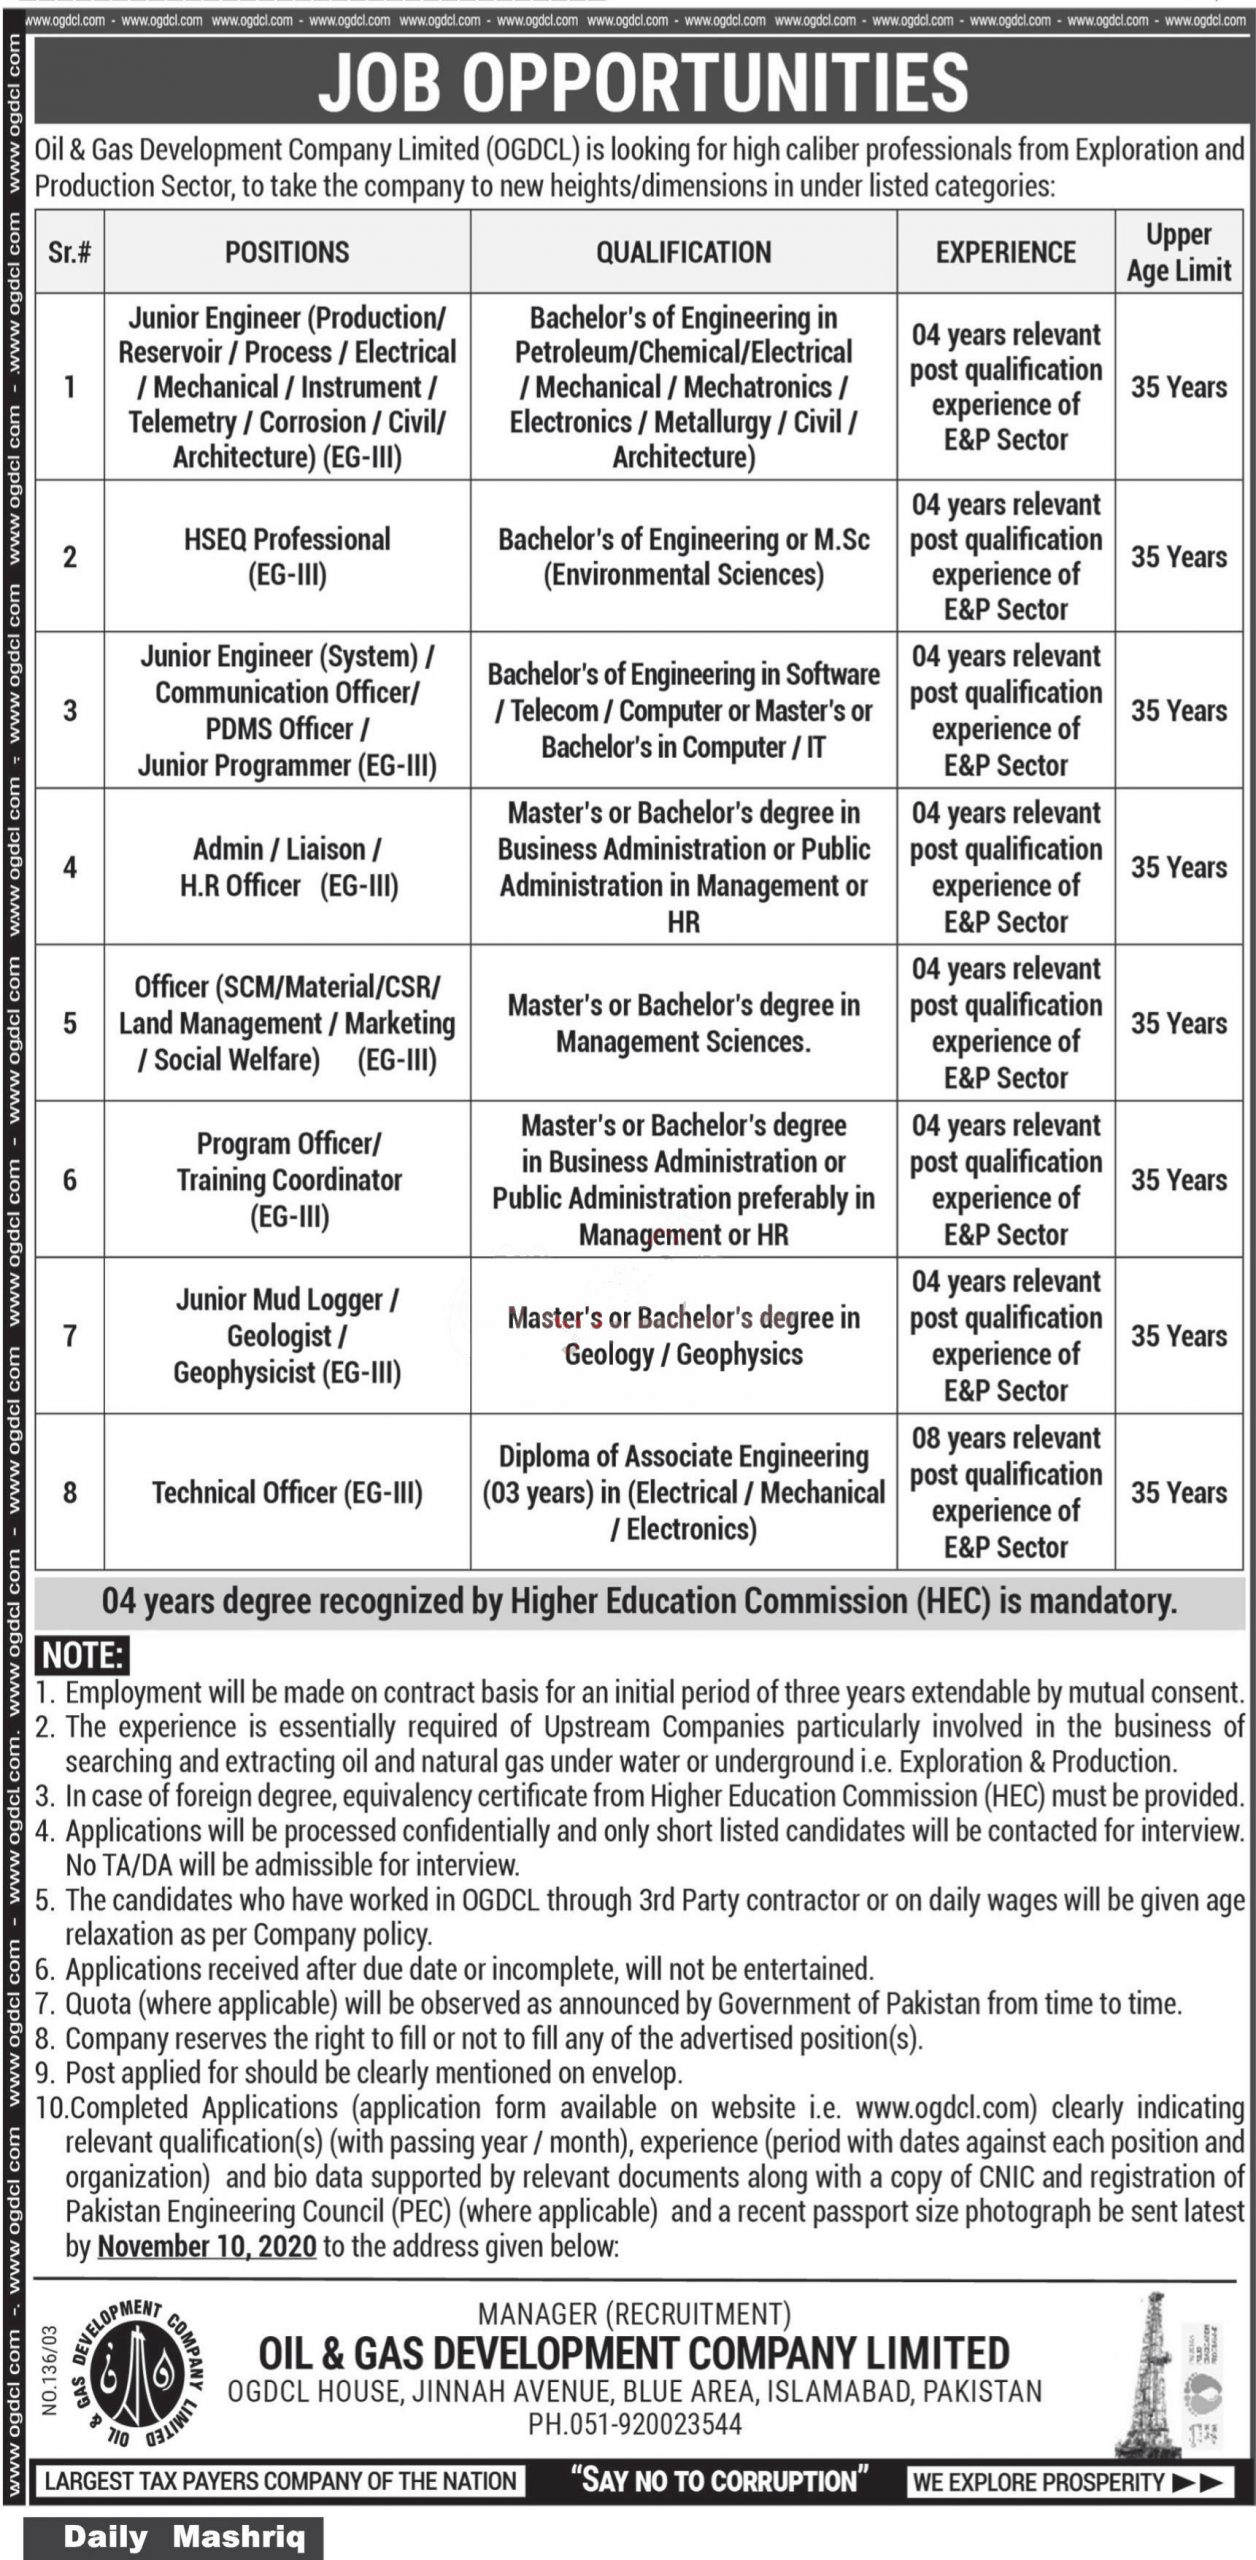 Jobs in OGDCL Islamabad for HSEQ Professional & Engineer 21 October, 2020